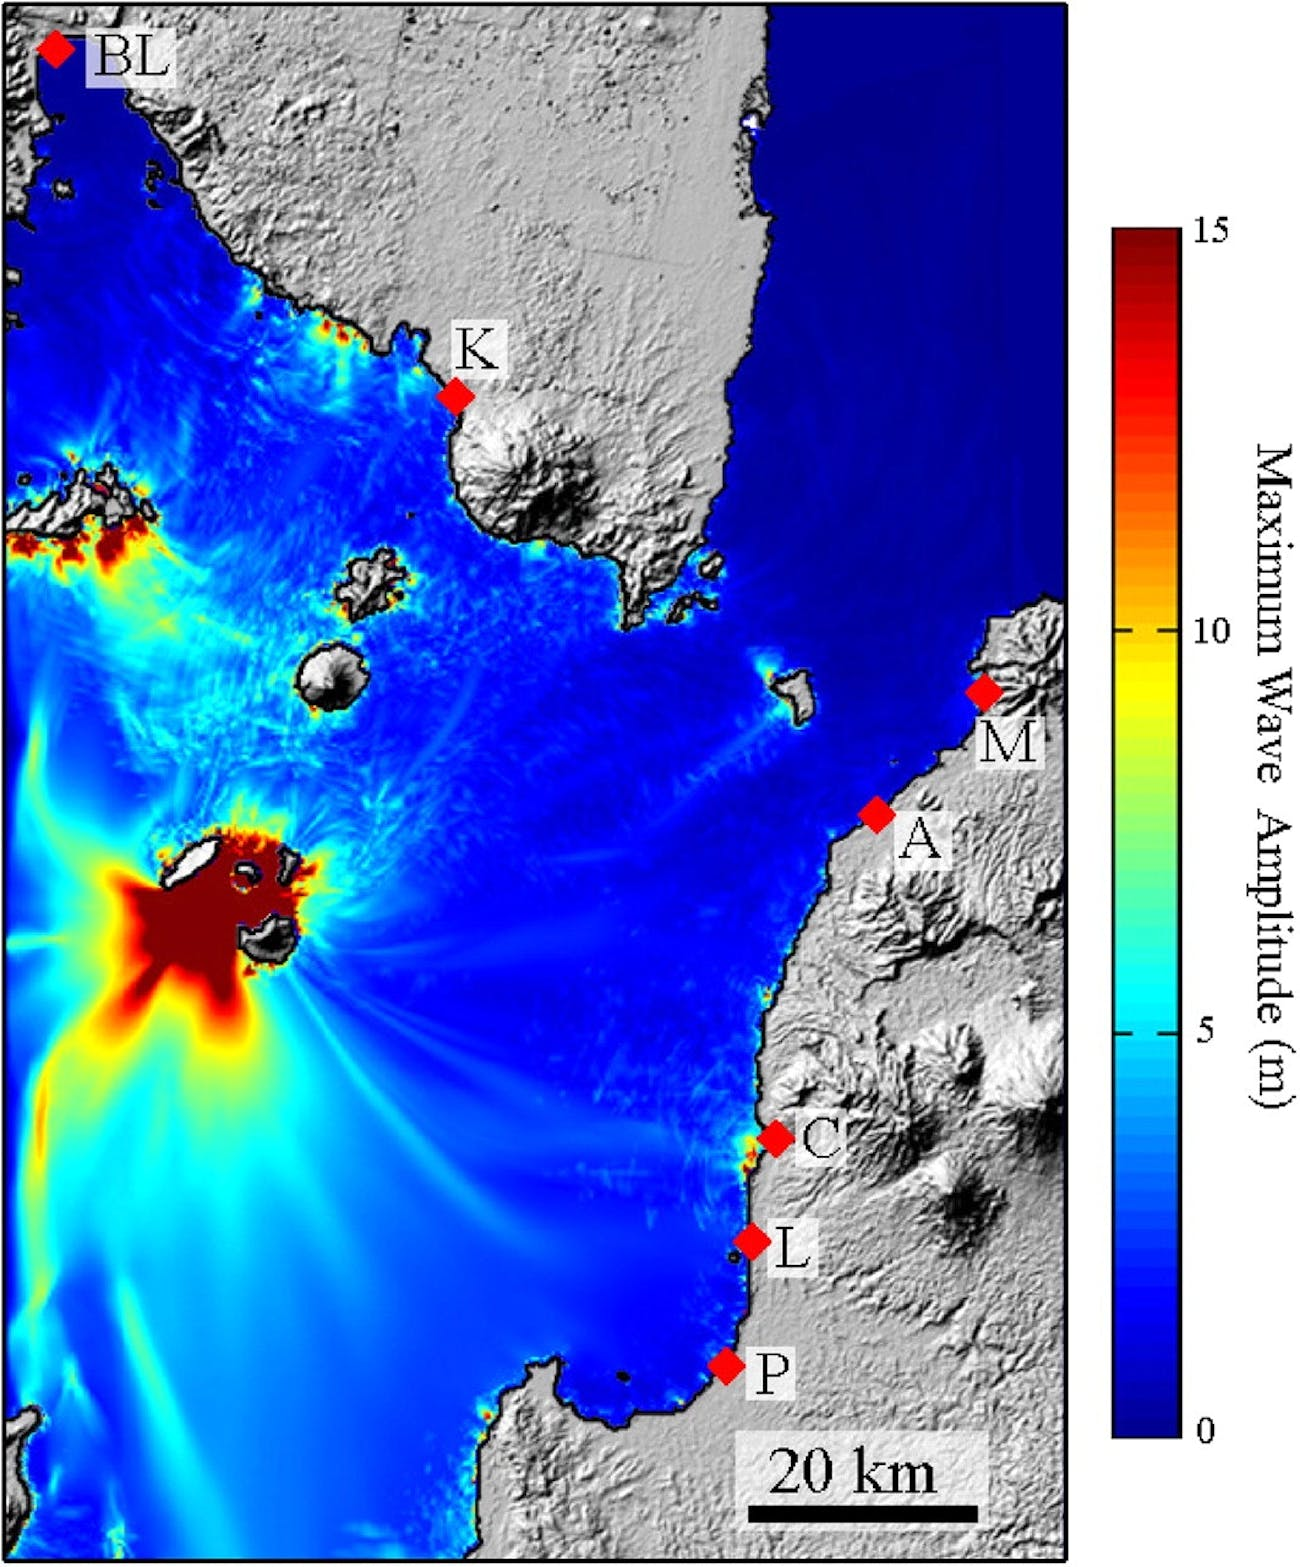 A simulation of a volcanic event showed the potential for waves of 15 meters or more locally (in red) emanating from the site of Anak Krakatau.